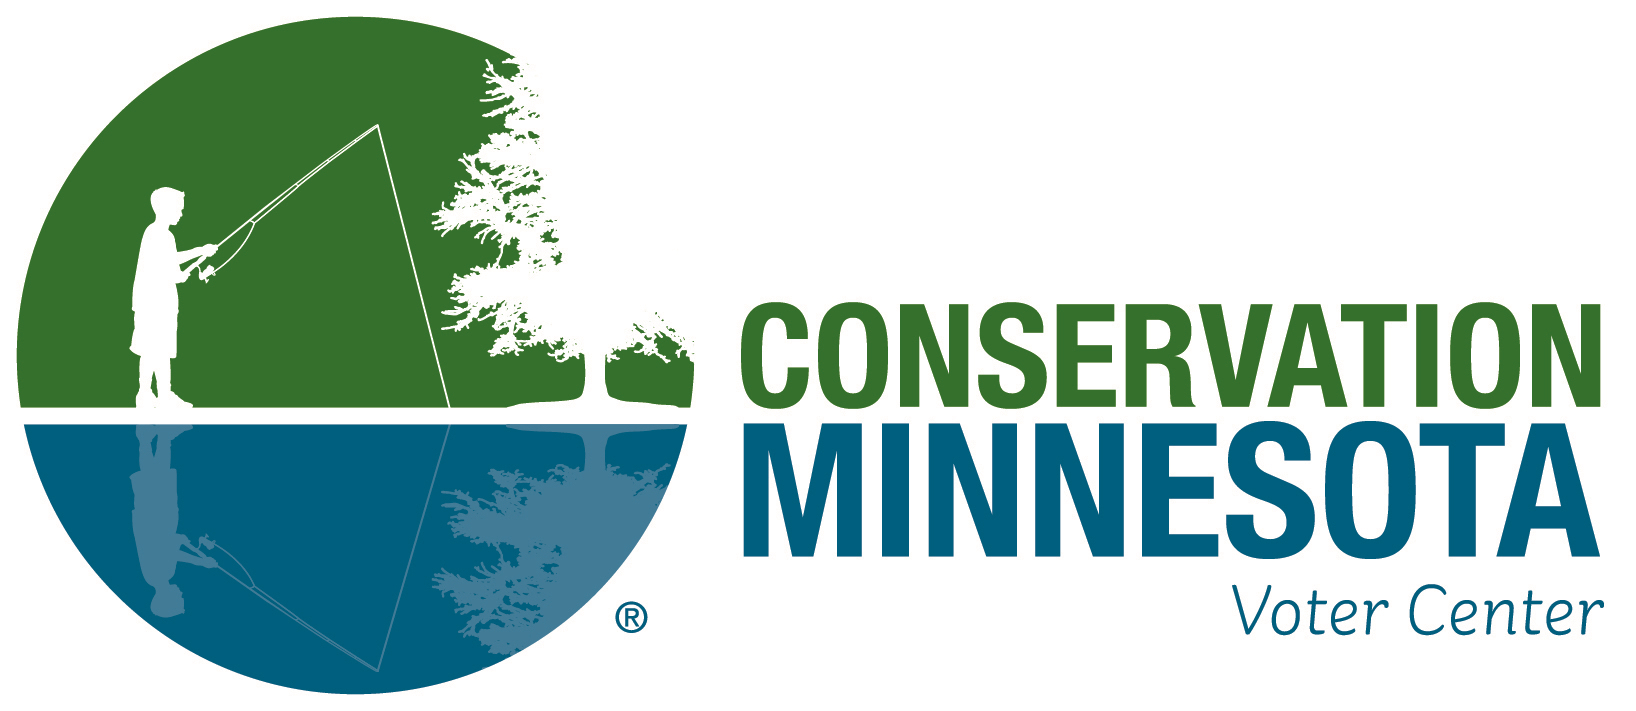 Conservation Minnesota Voter Center